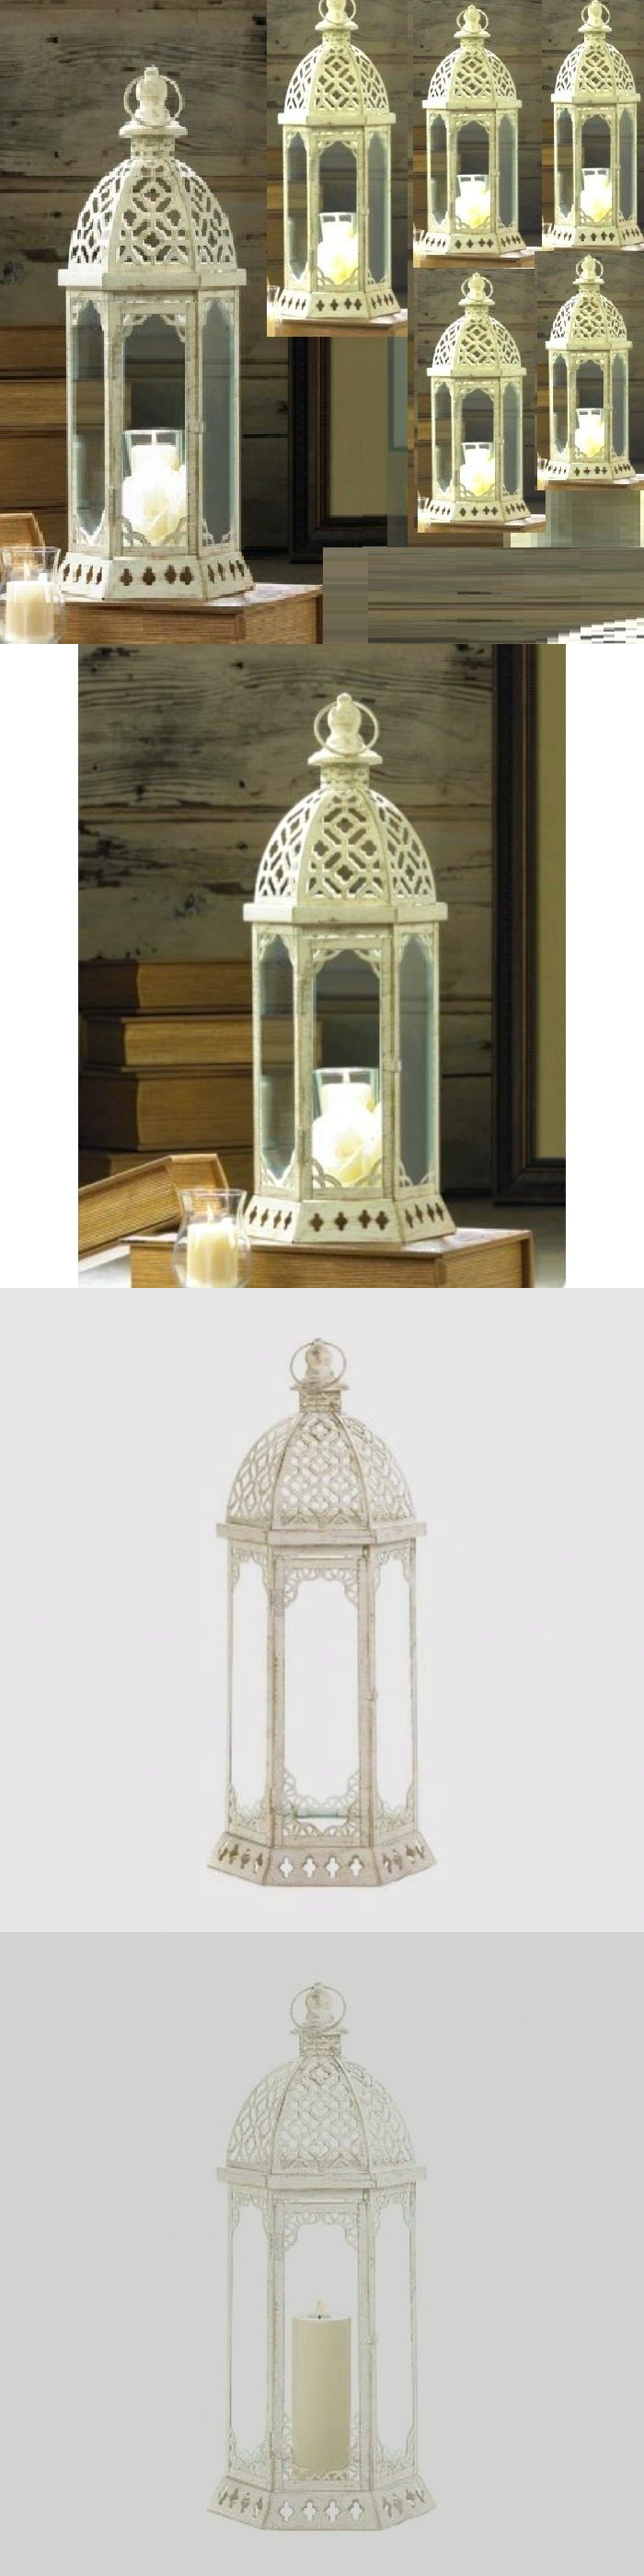 Centerpieces and Table D cor 159928: 6 Large Distressed Lantern 15.8 ...